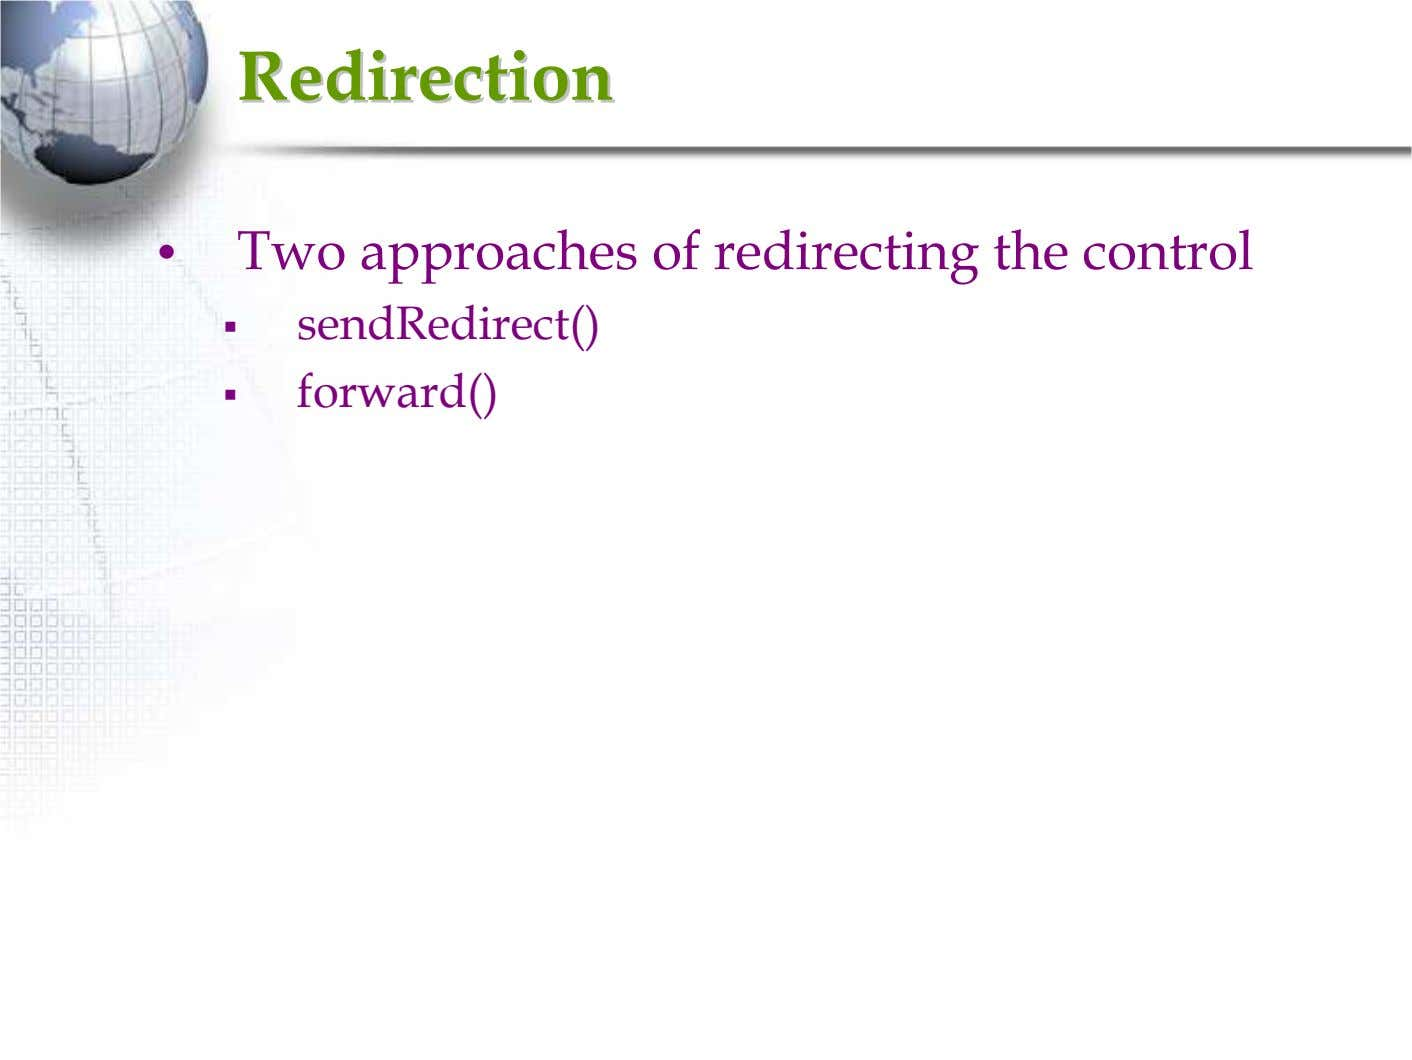 RedirectionRedirection • Two approaches of redirecting the control sendRedirect() forward()